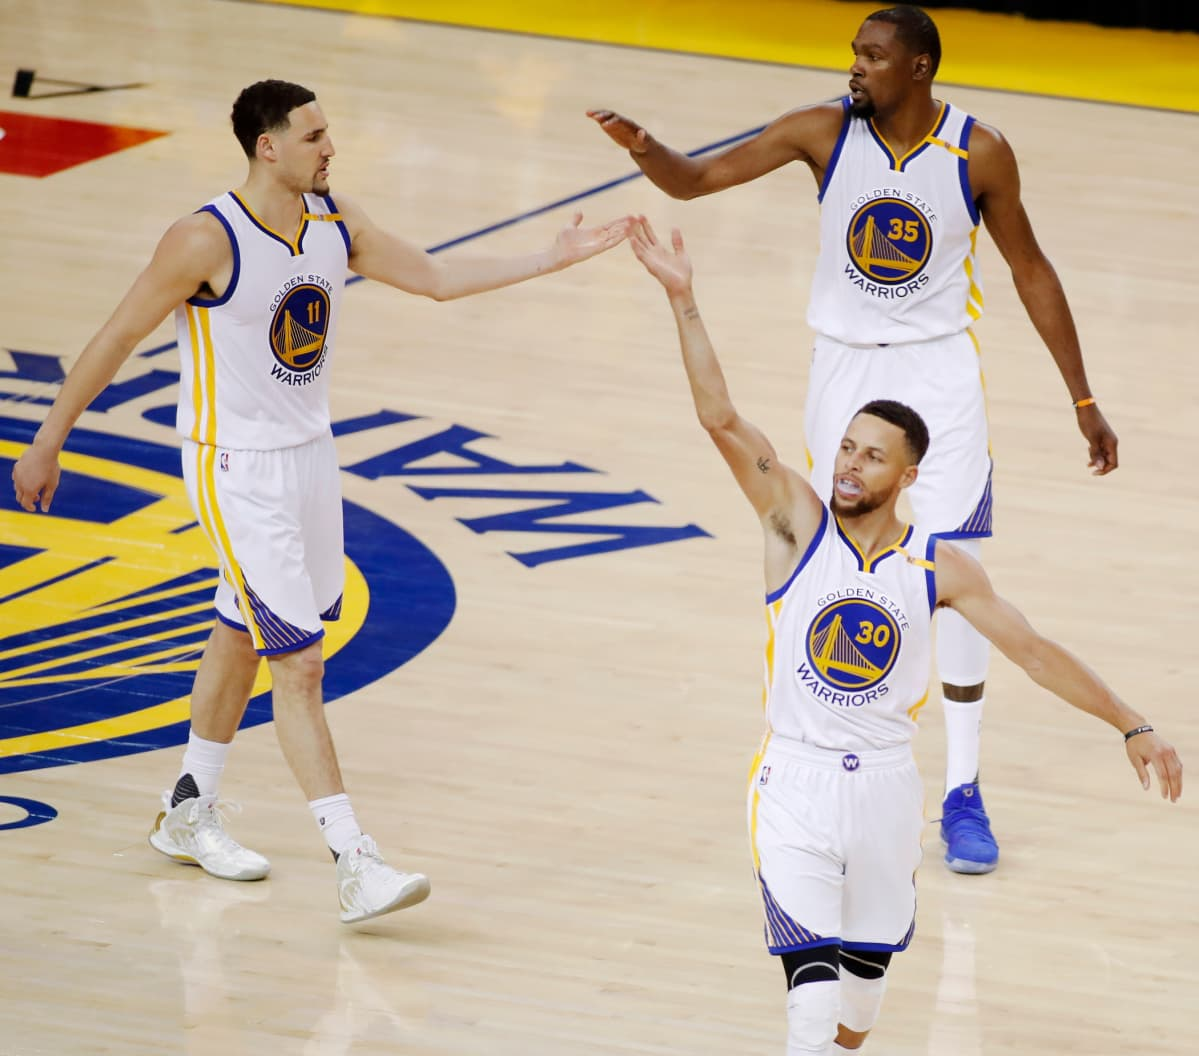 Golden State Warriorsin Stephen Curry, Klay Thompson ja Kevin Durant juhlivat voittoa.